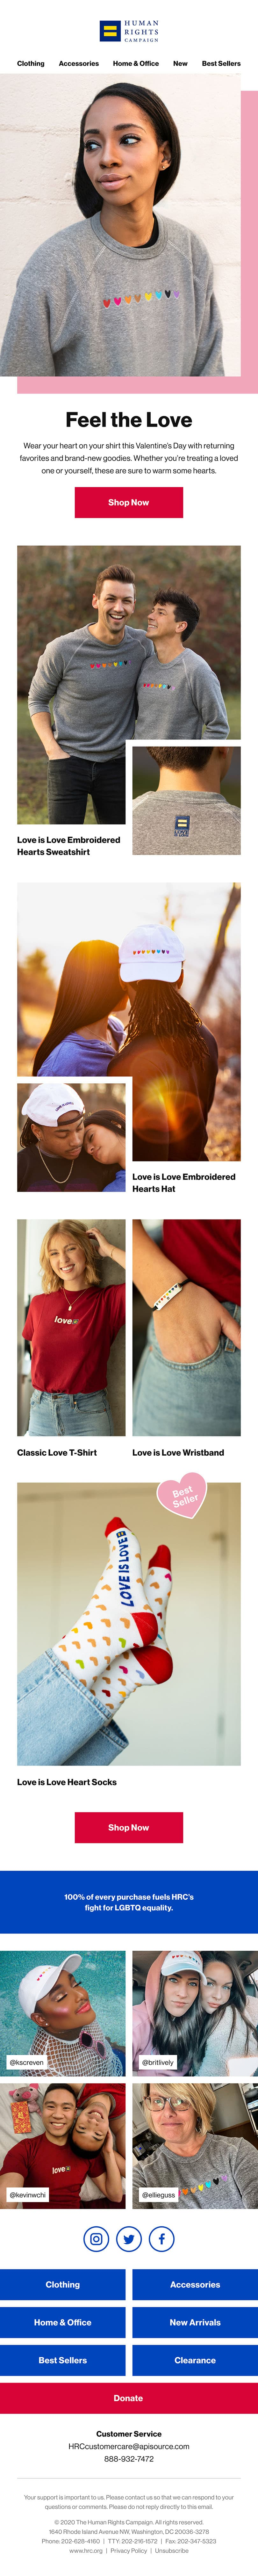 An email newsletter promoting Valentine's Day themed merchandise for HRC.